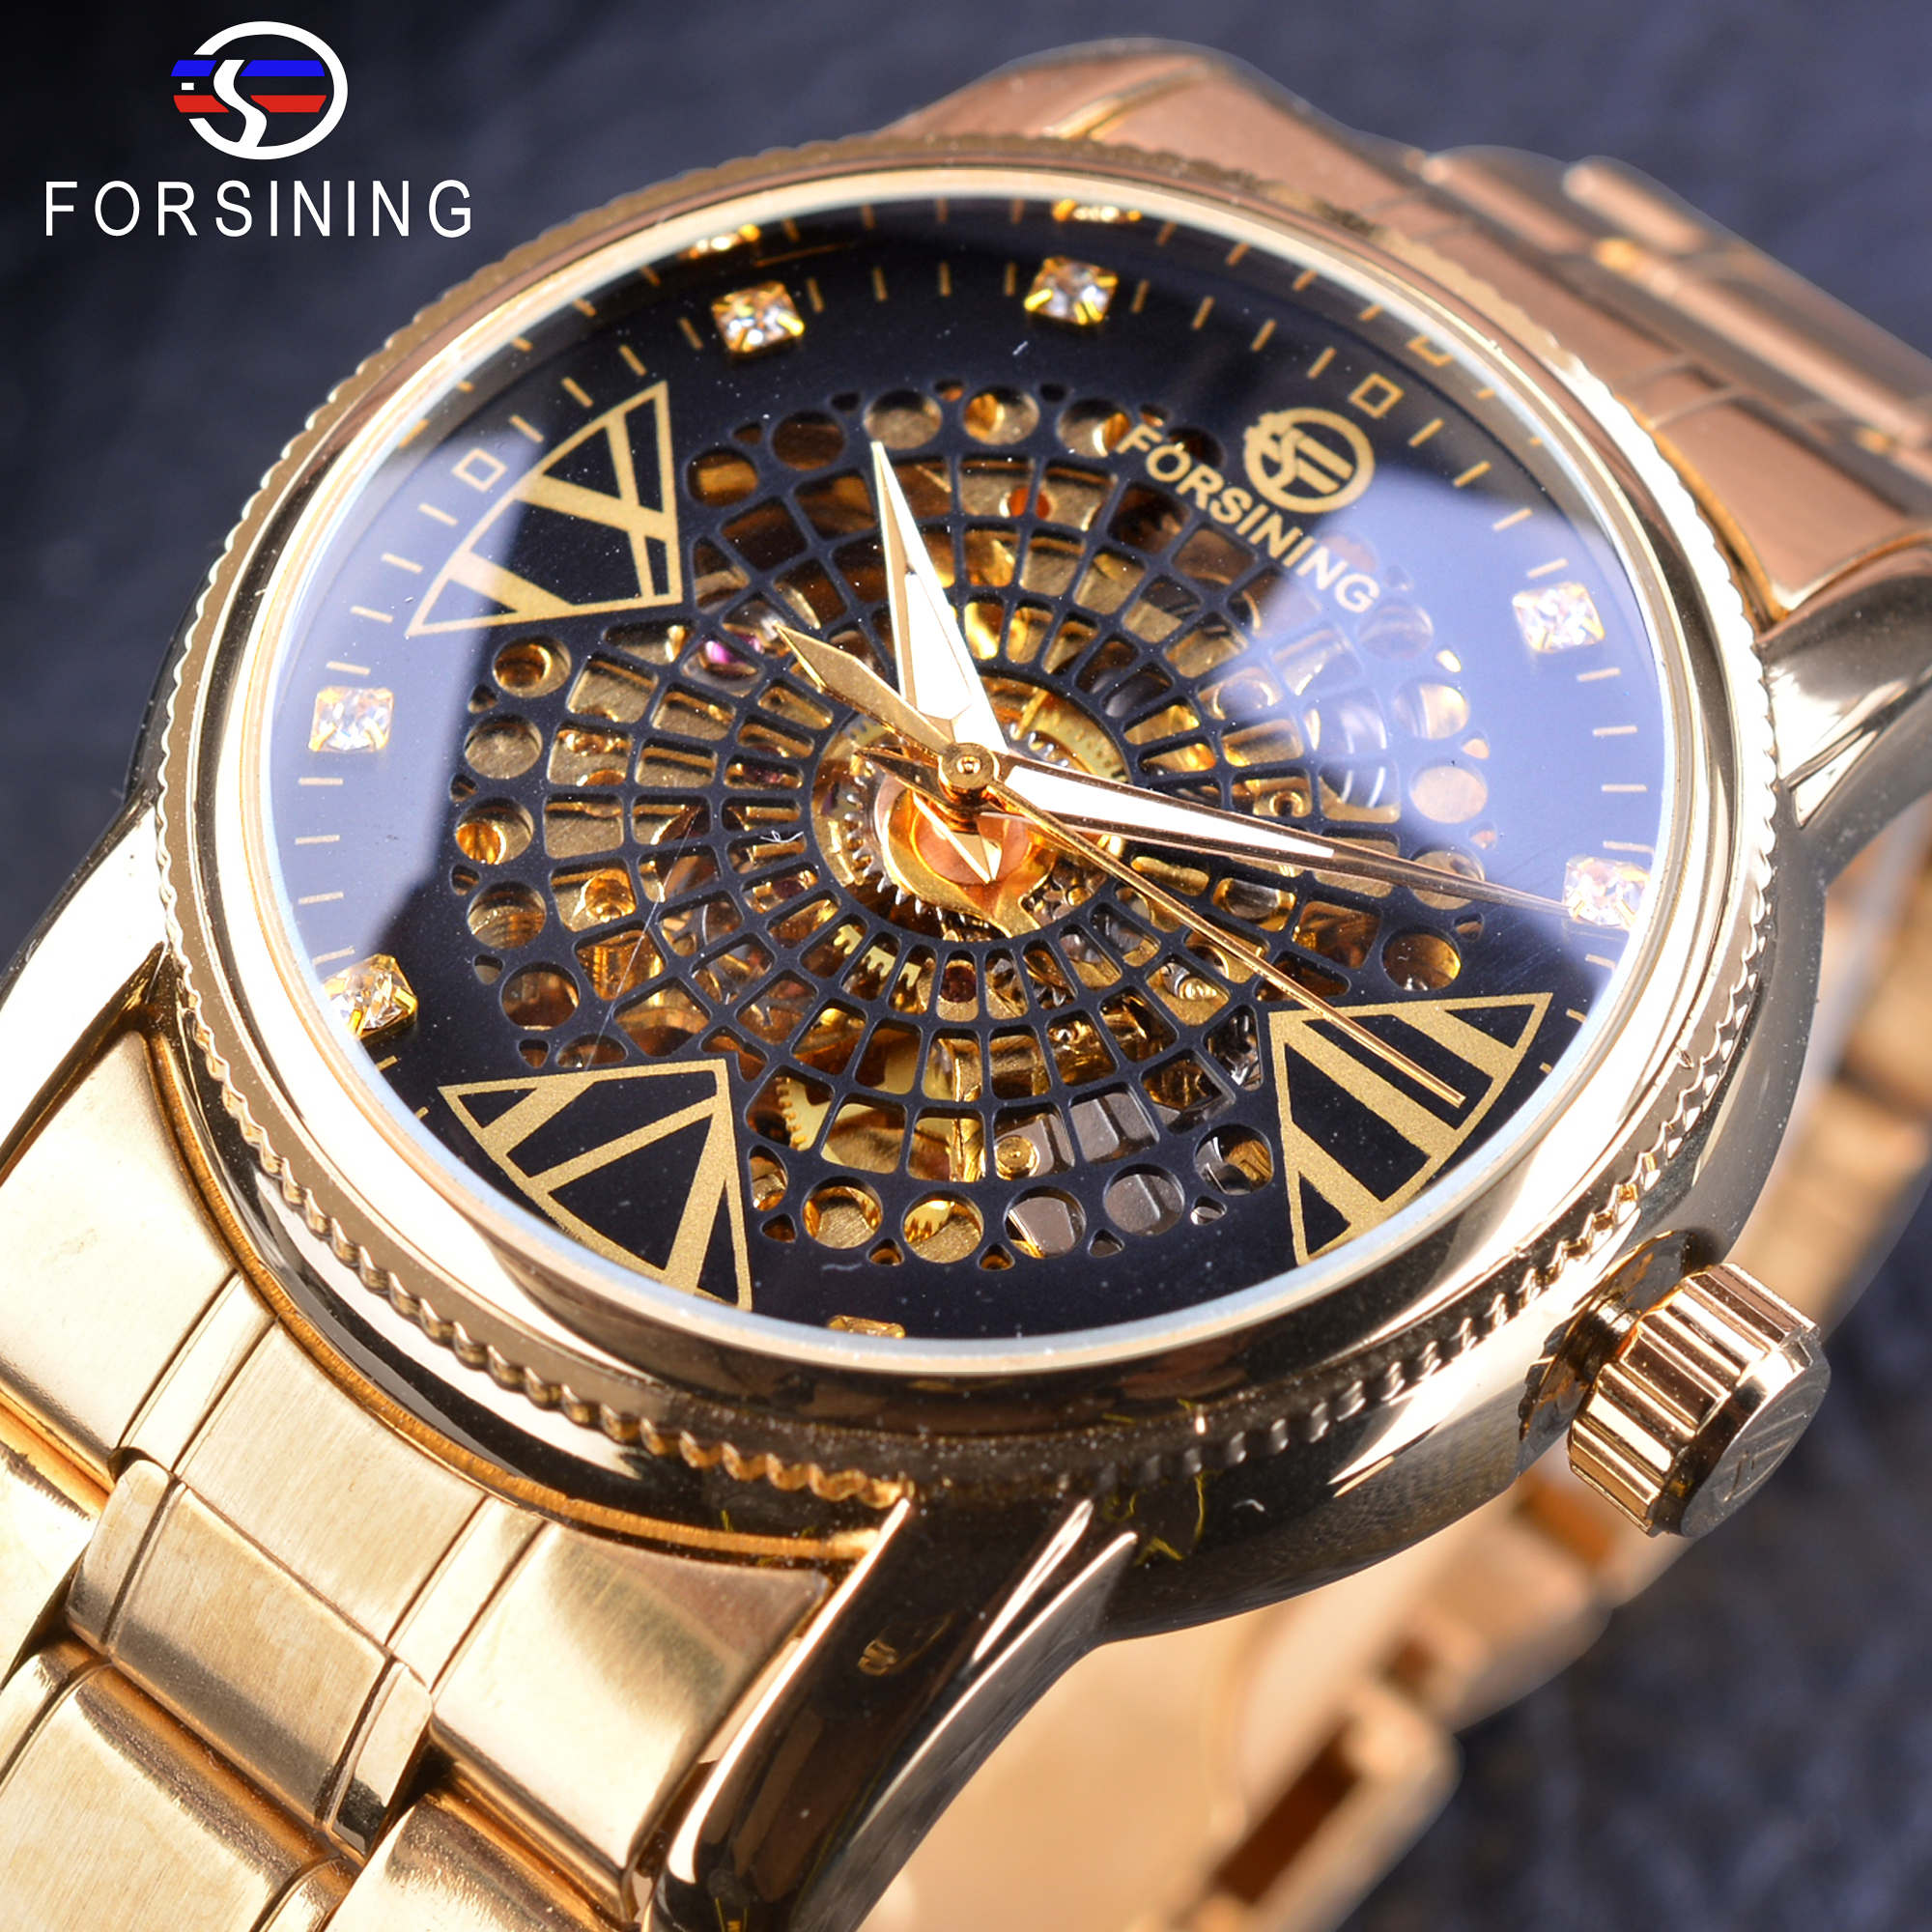 Forsining Mode Goldene Skeleton Diamant Display Männer Kreative Armbanduhr Top-marke Luxus Durchbrochene Mechanische Uhr Männliche Uhr